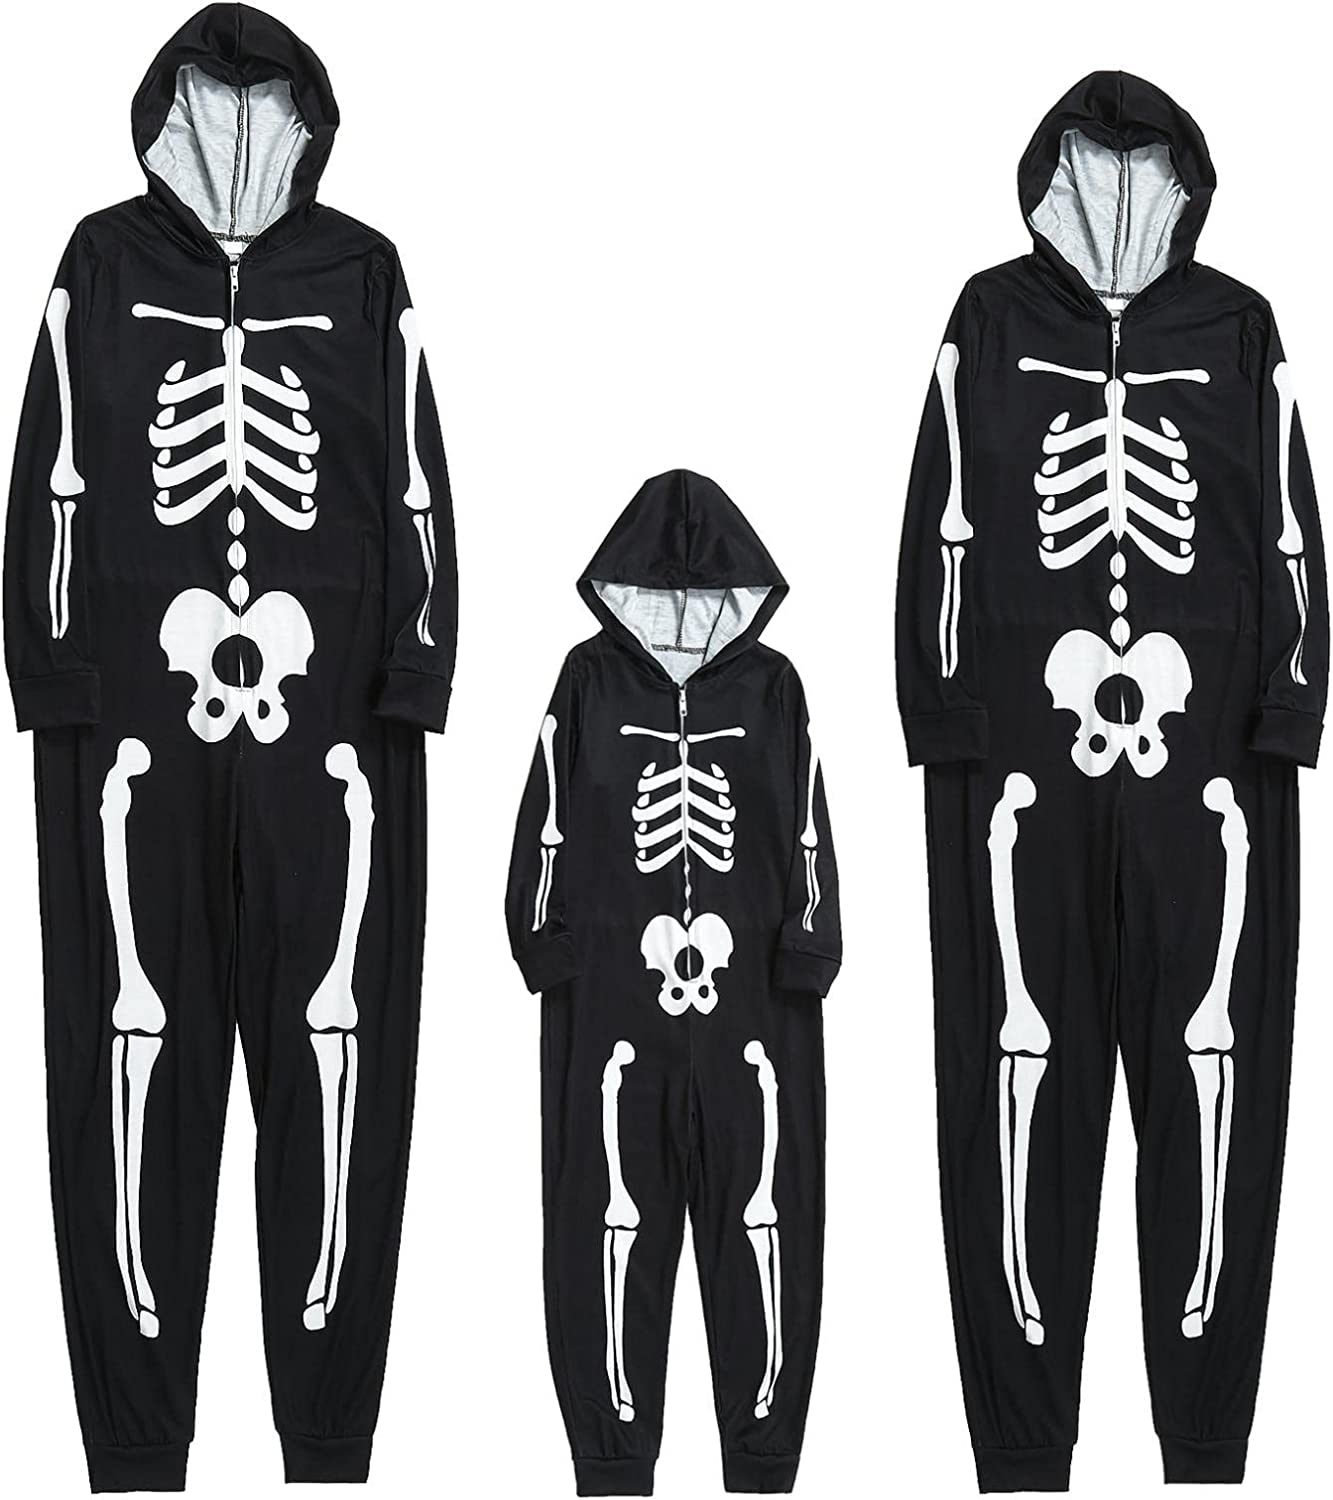 Finally resale start Lovor Halloween Matching Costumes for Homewear Clothing S Gorgeous Family